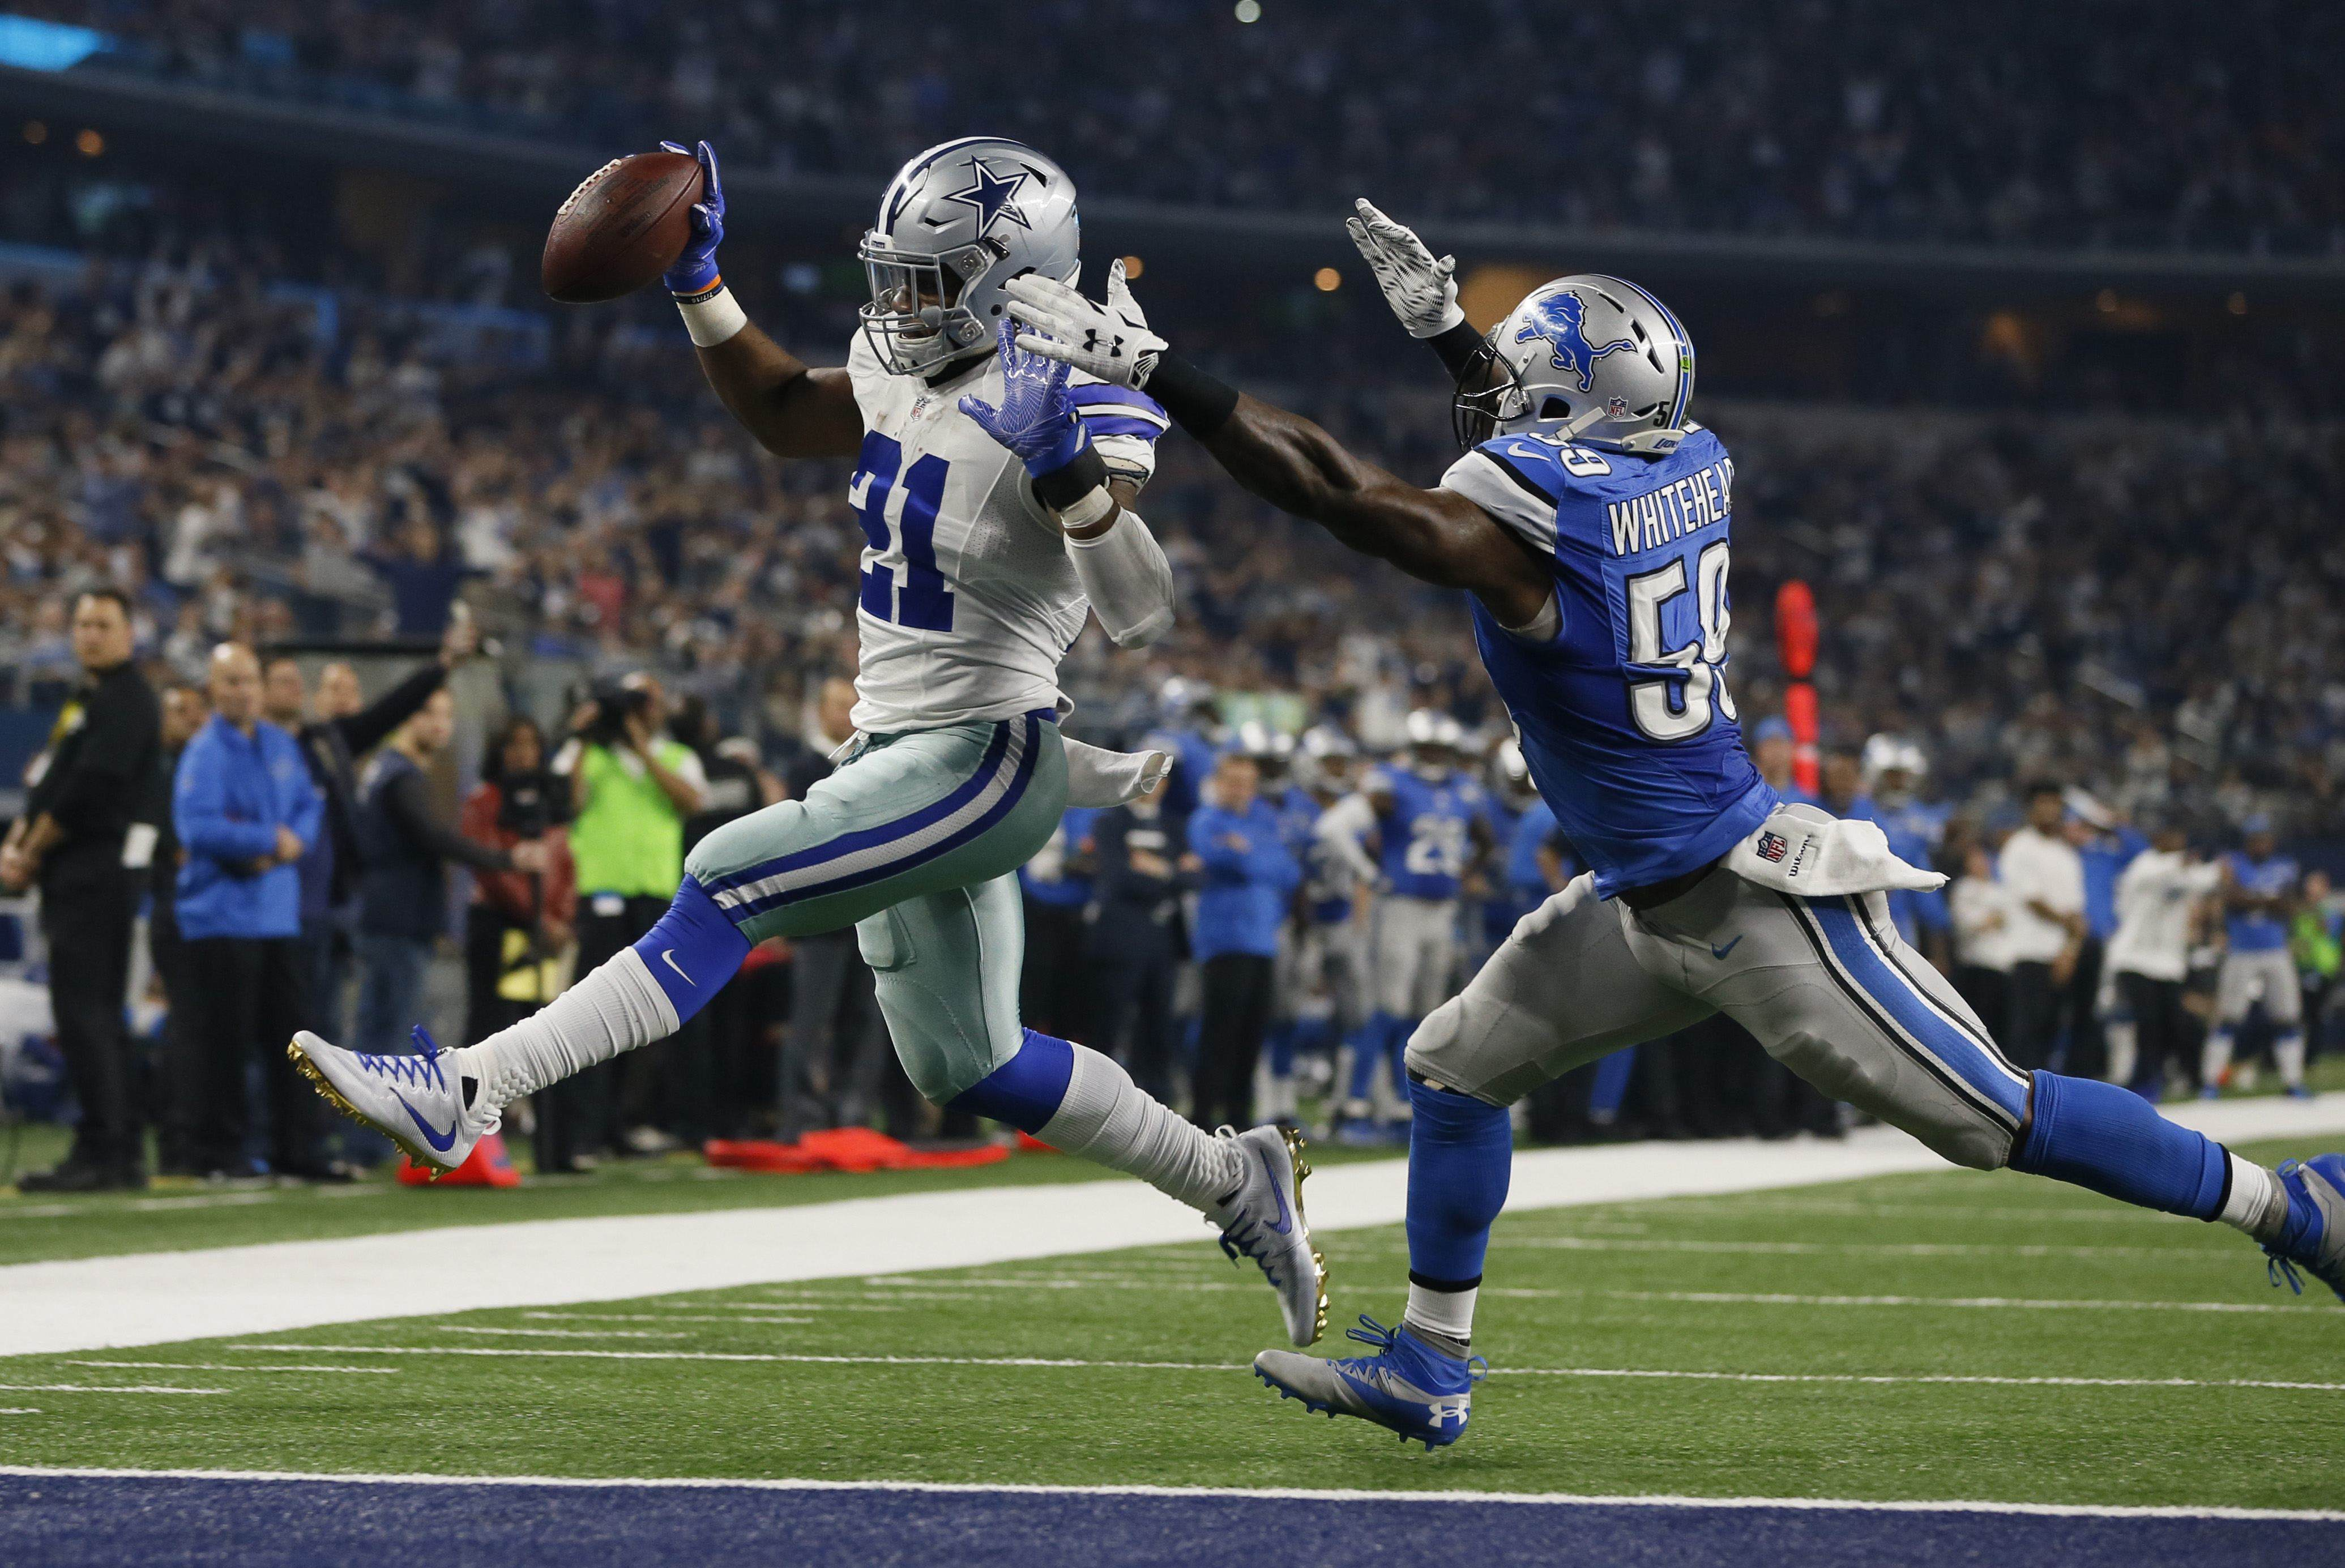 The-good-the-bad-and-the-ugly-for-cowboys-against-lions1